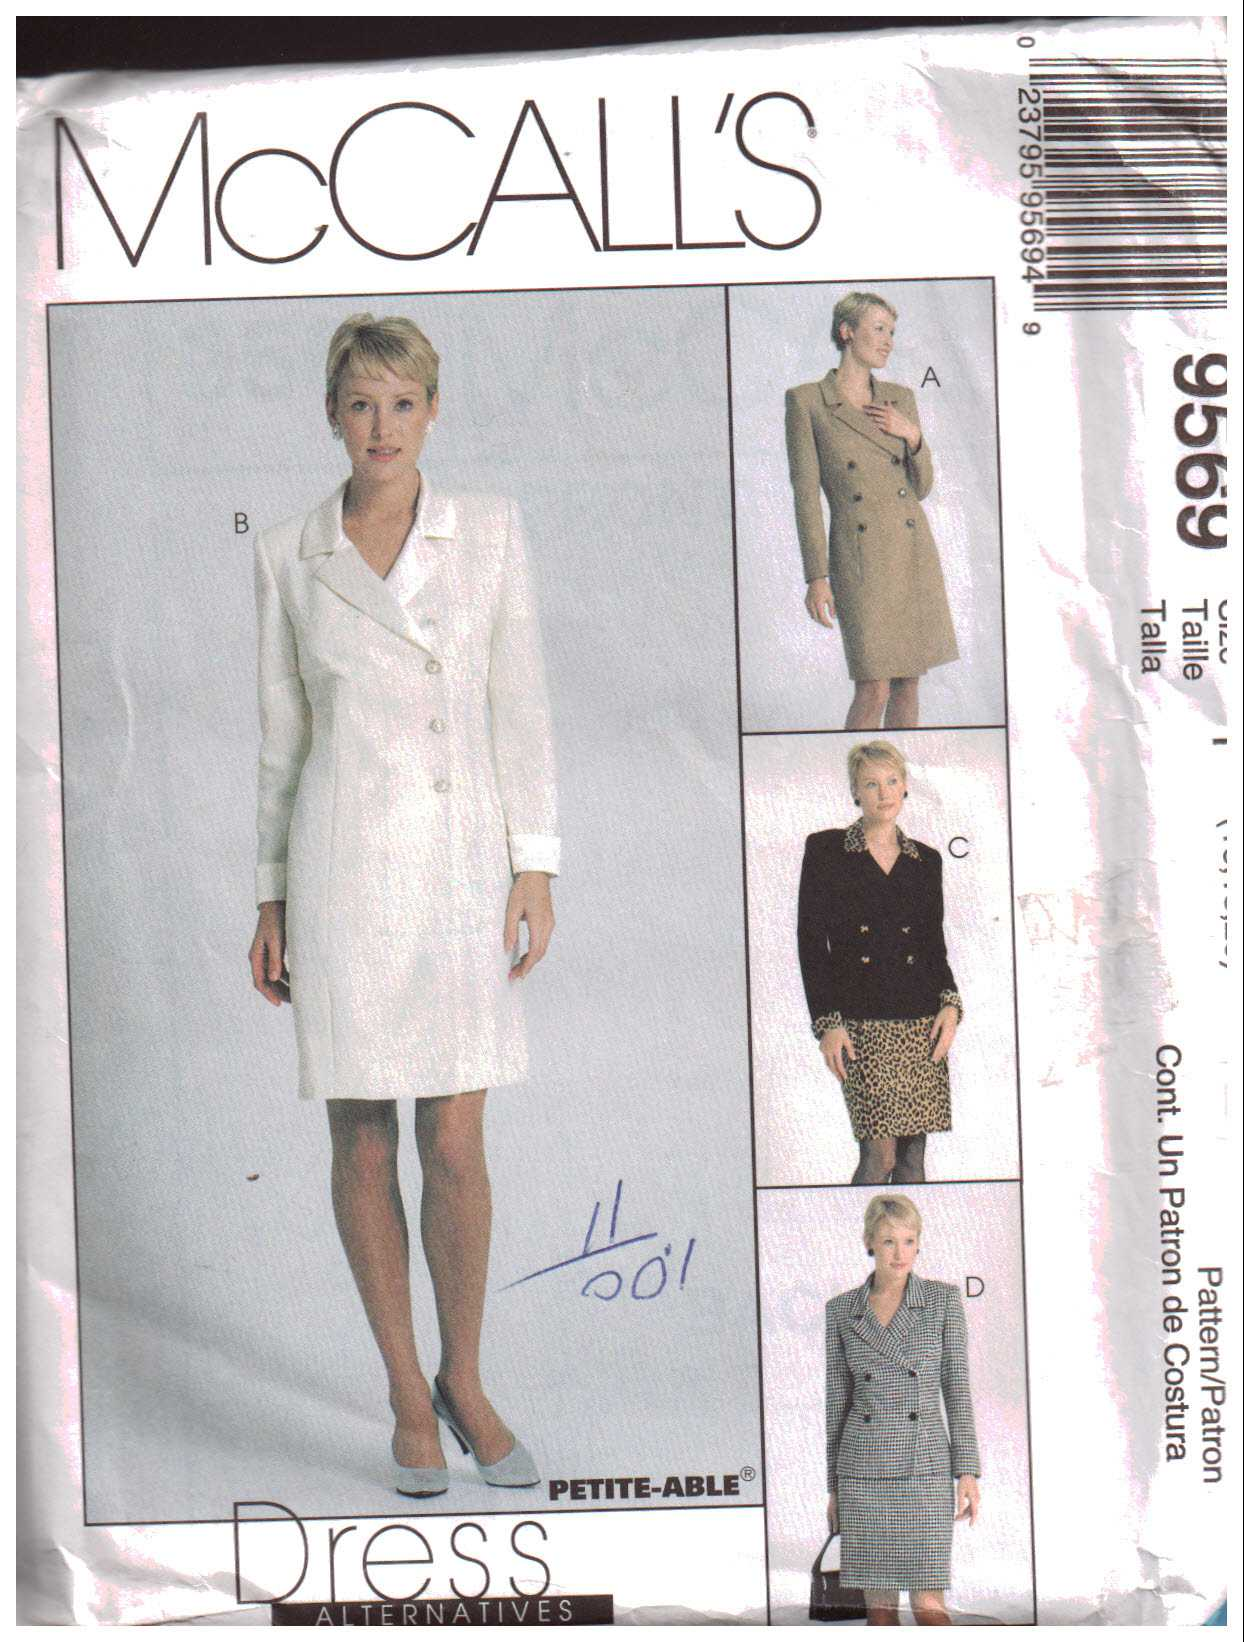 Skirts Sewing Patterns Archives - Page 29 of 69 - Pattern-Walk